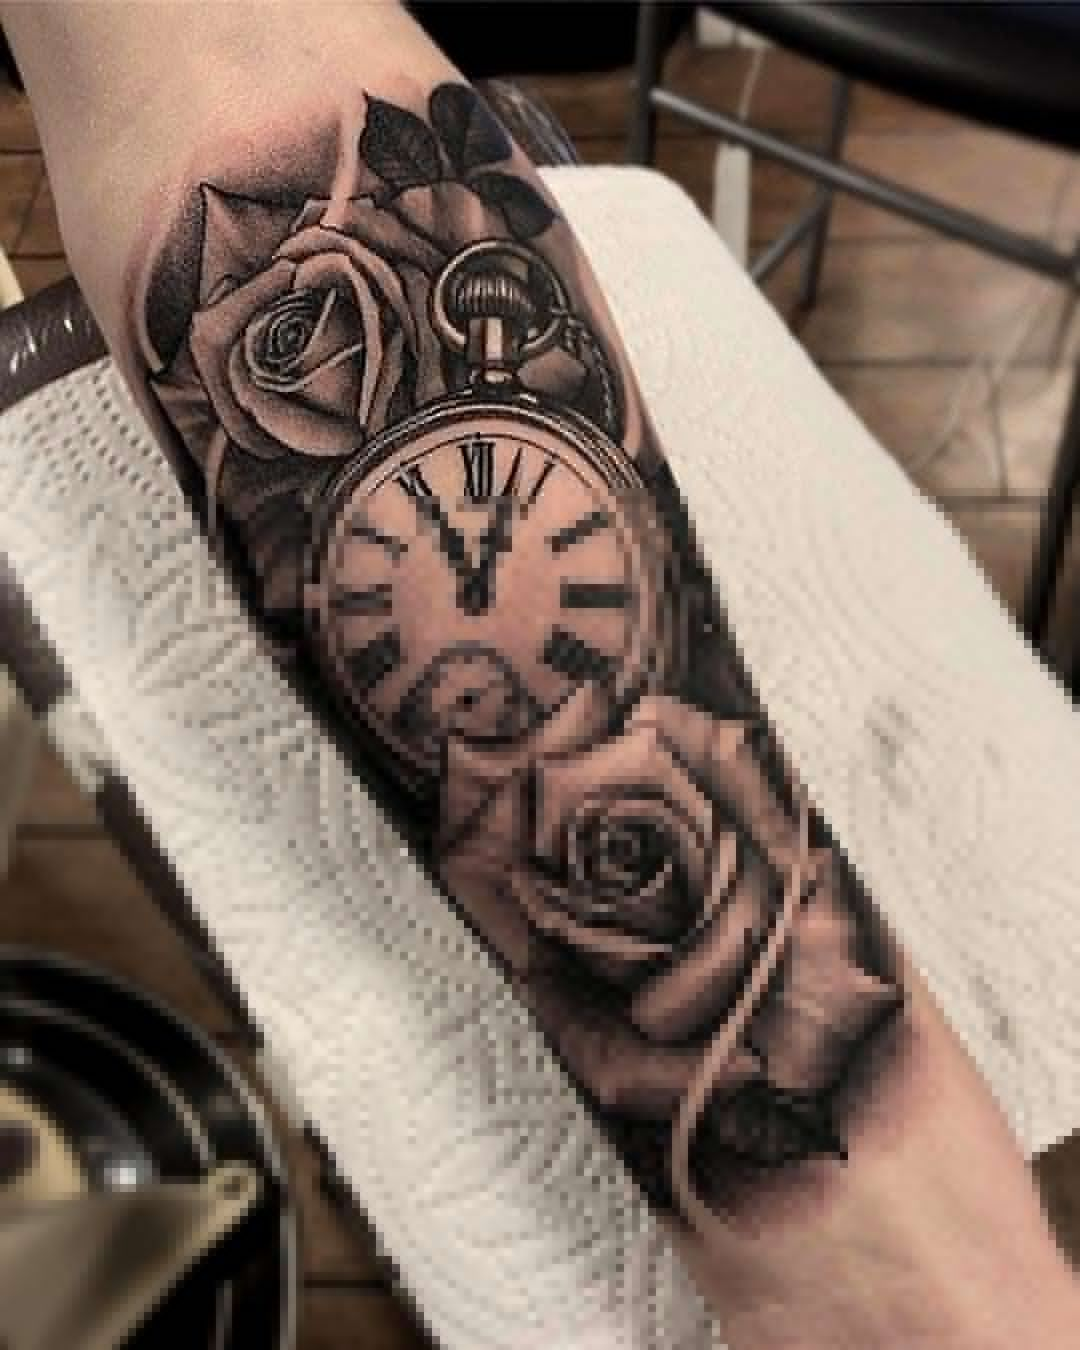 Clock Tattoos With Roses For Men In 2020 Clock Tattoo Watch Tattoos Clock Tattoo Sleeve